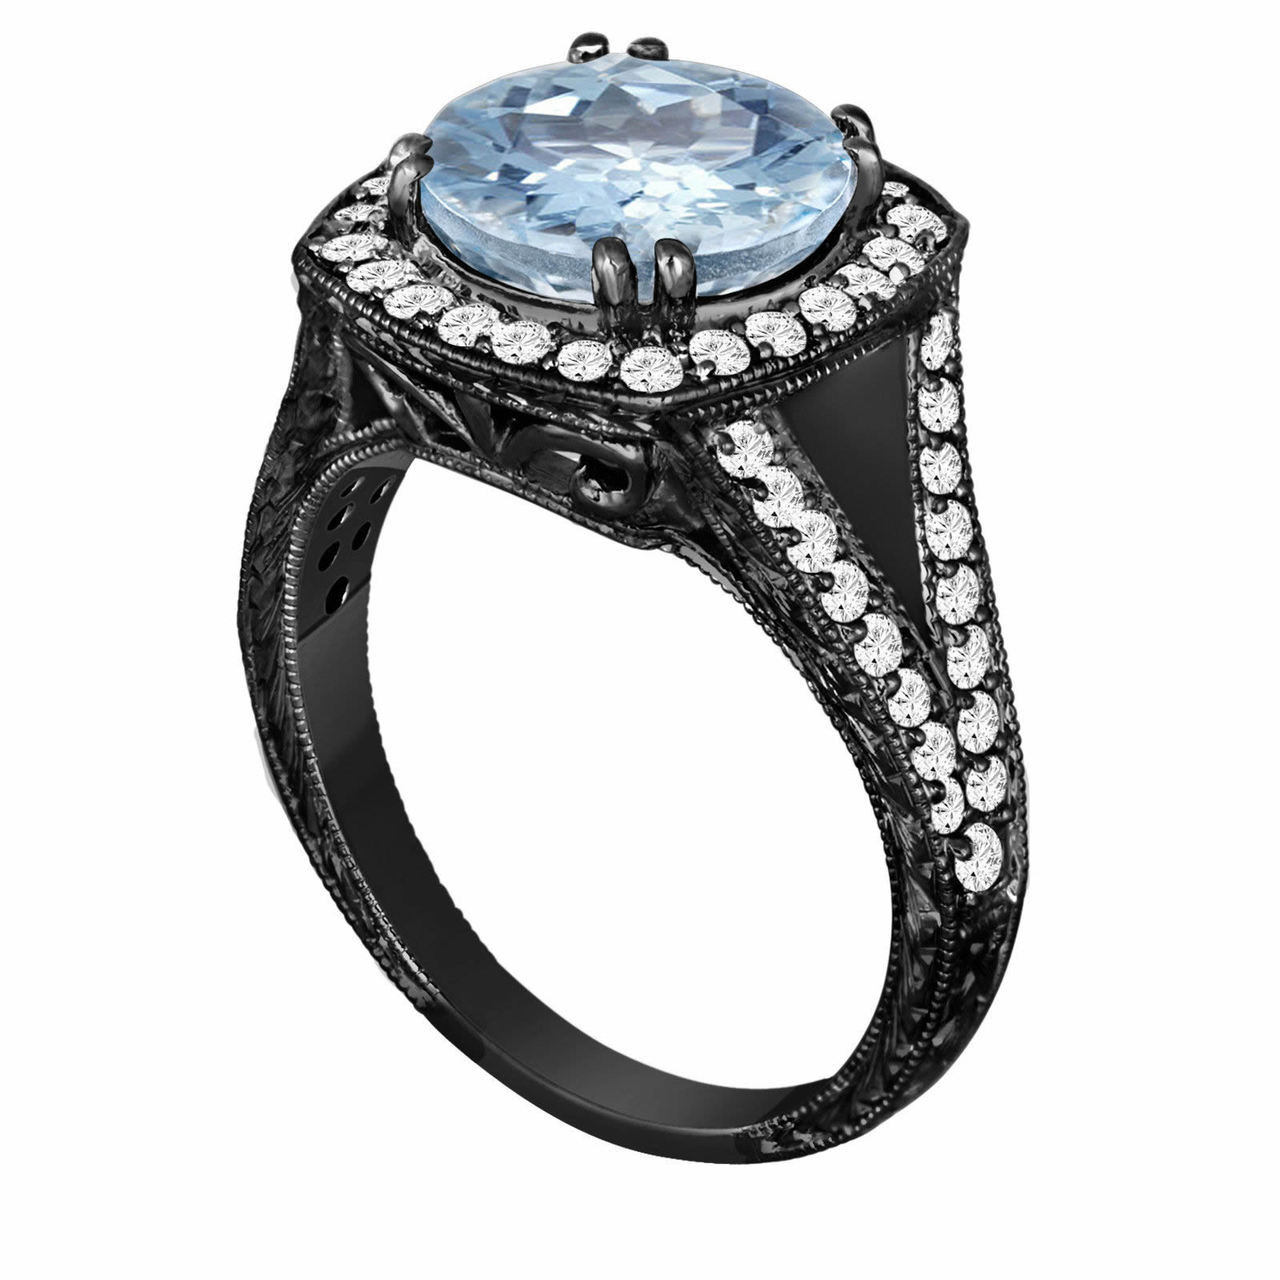 Aquamarine Amp Diamonds Cocktail Ring Antique Vintage Style